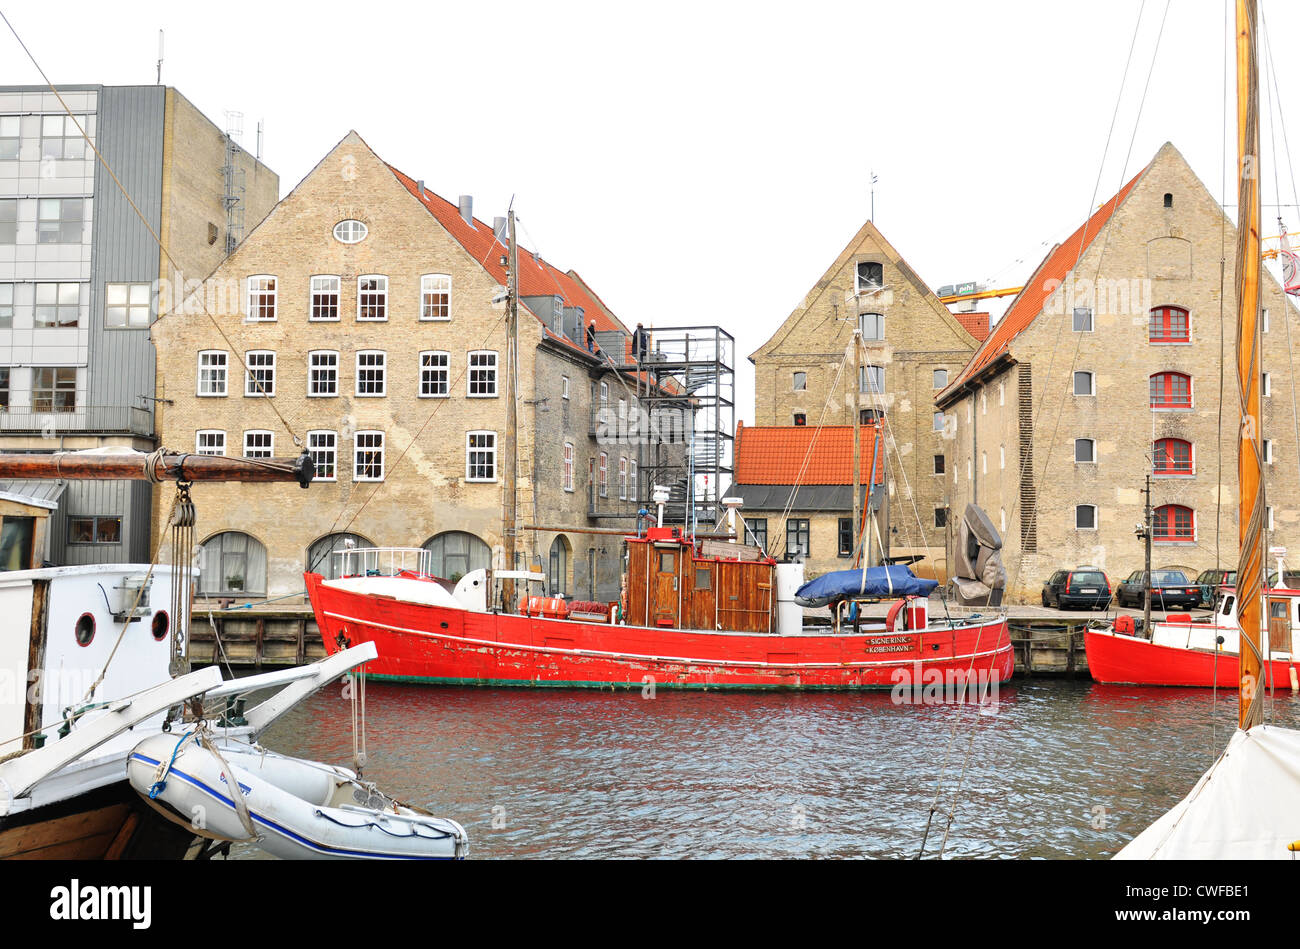 Copenhagen, Denmark - 19 Dec, 2011: Generic view of historical buildings and boats across the Nyhavn canal - Stock Image